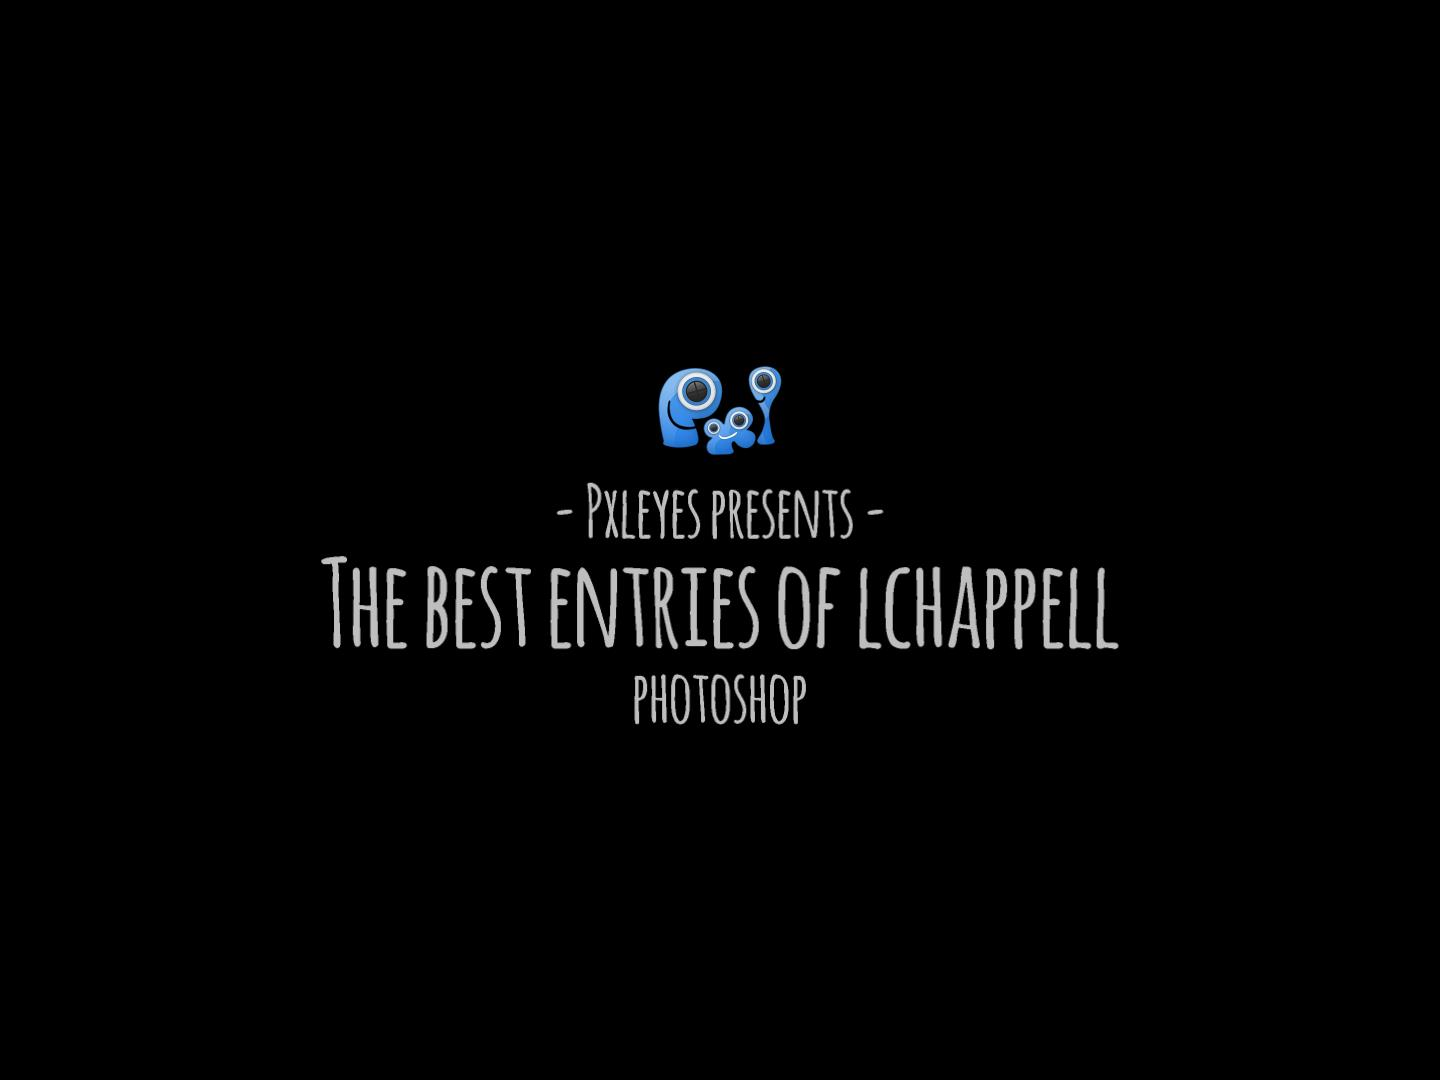 The best entries by lchappell